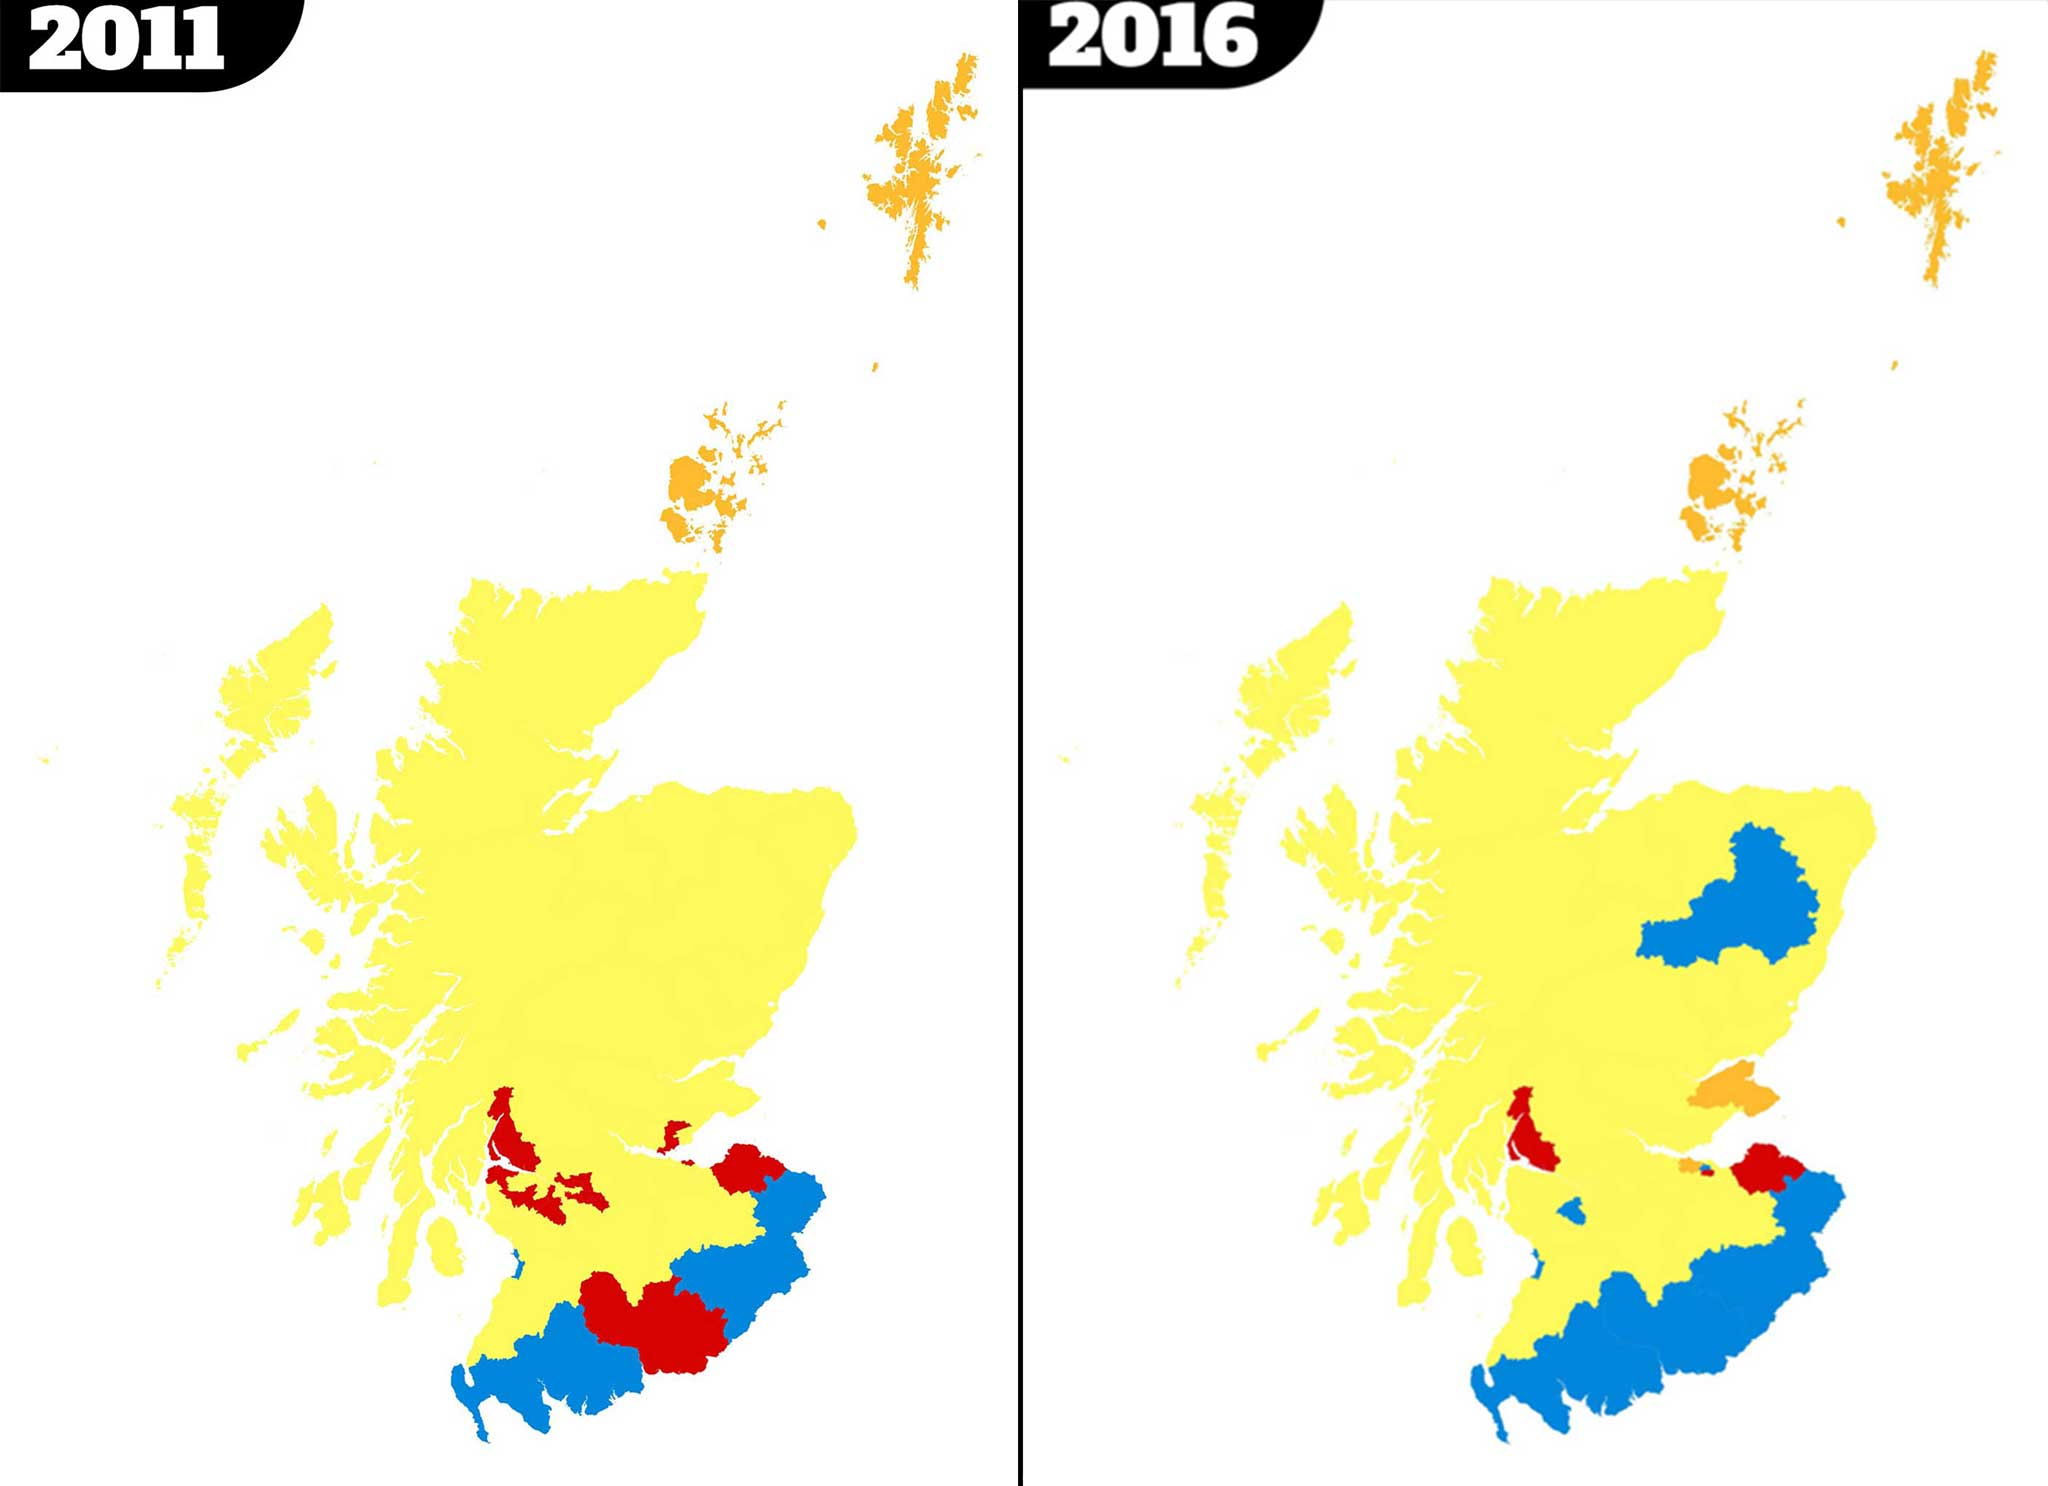 Scottish Parliament Election Results Two Maps That Show Labours - Current us map of election results 2016